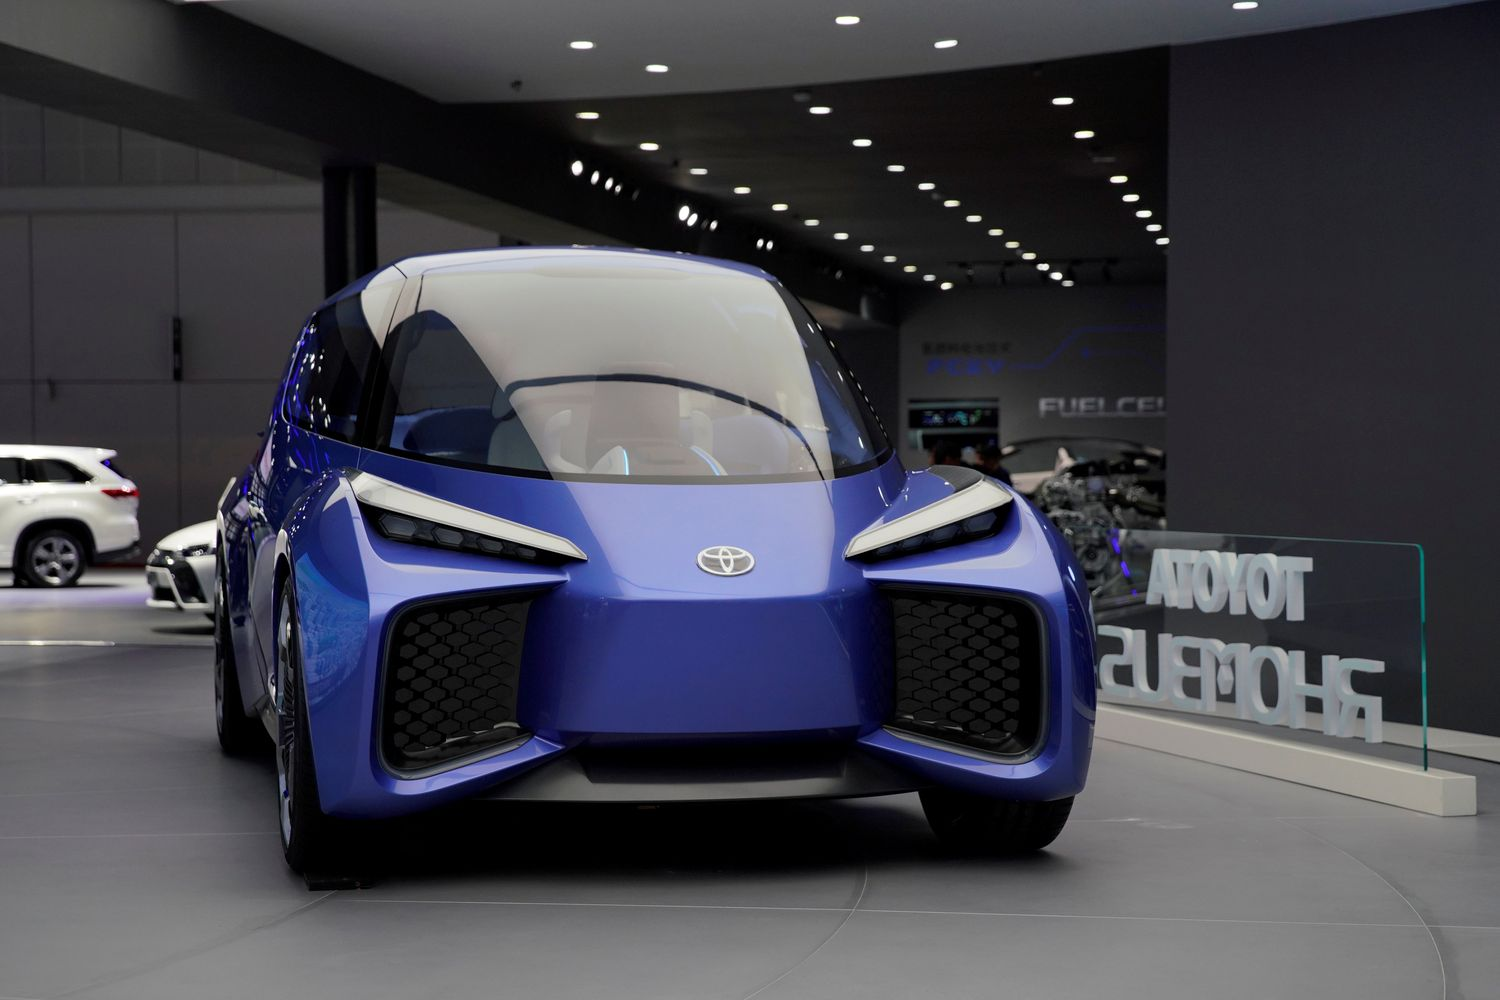 A Toyota's electric vehicle concept Rhombus is displayed during the media day for Shanghai auto show in Shanghai on April 17. (Reuters photo)